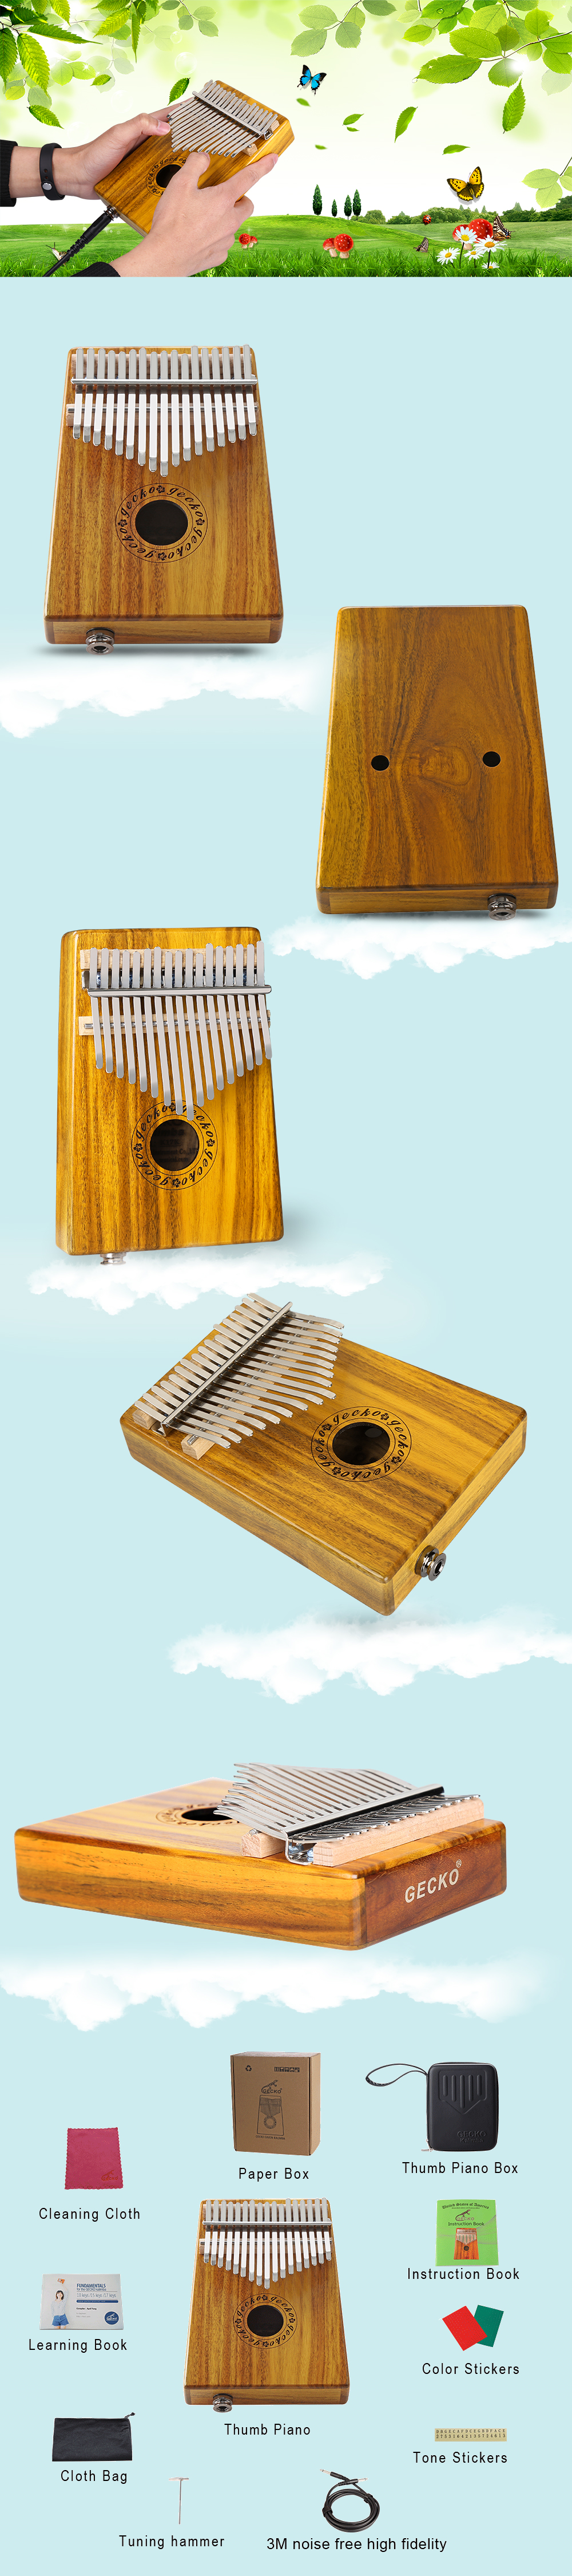 GECKO Mbira Sanza 17 Keys Thumb Piano with Kalimba BOX and High Fidelity Cable